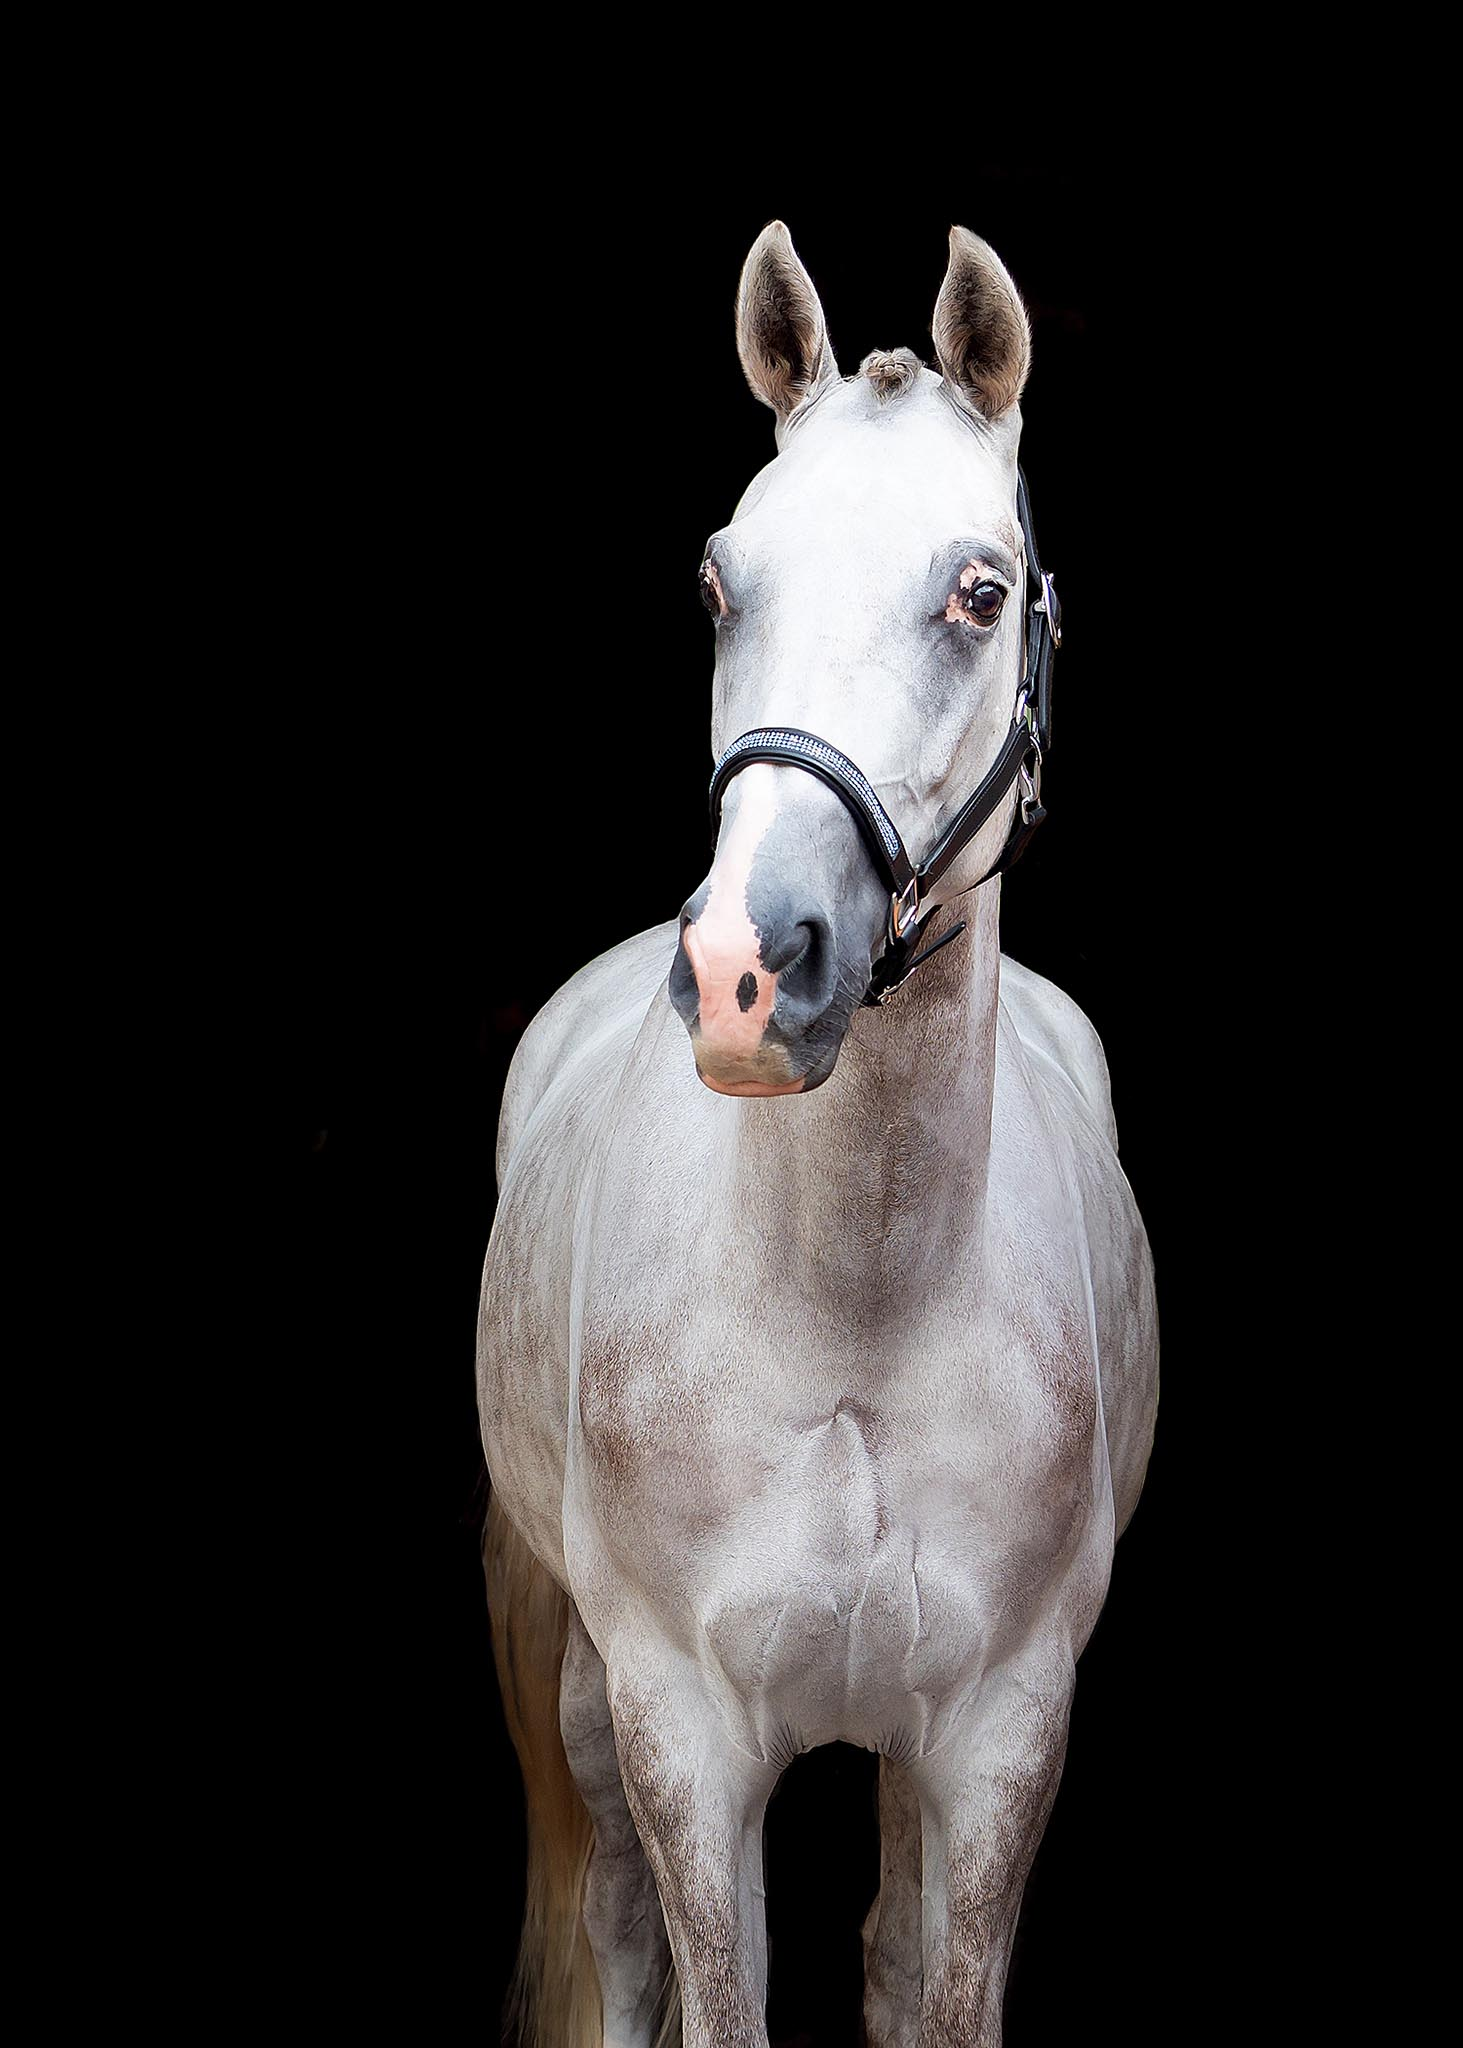 horse-photography-black-background.jpg